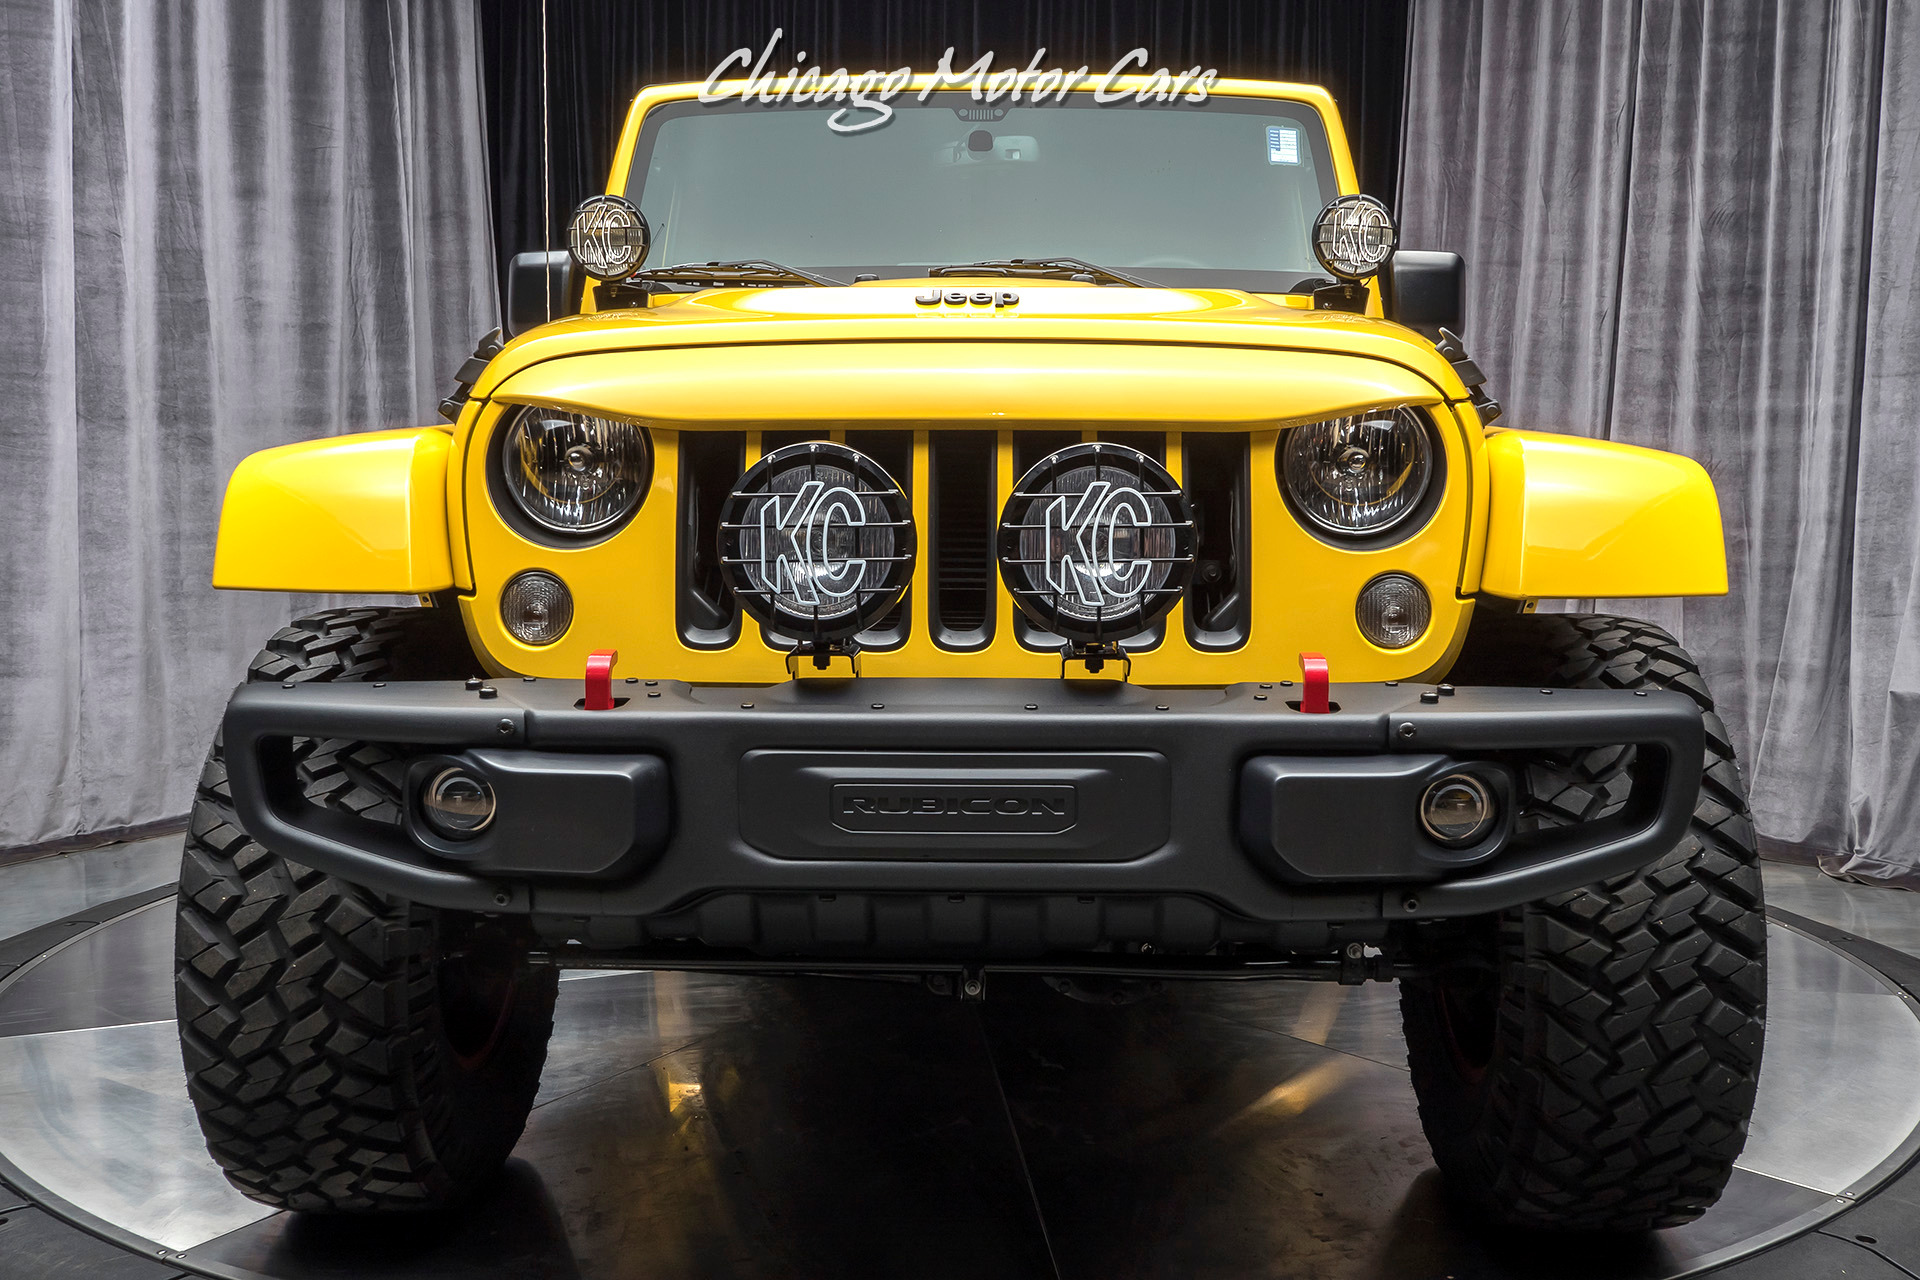 Used-2015-Jeep-Wrangler-Unlimited-Wrangler-Unlimited-X-4X4-SUV--LOADED-WITH-UPGRADES-LIFT-KIT